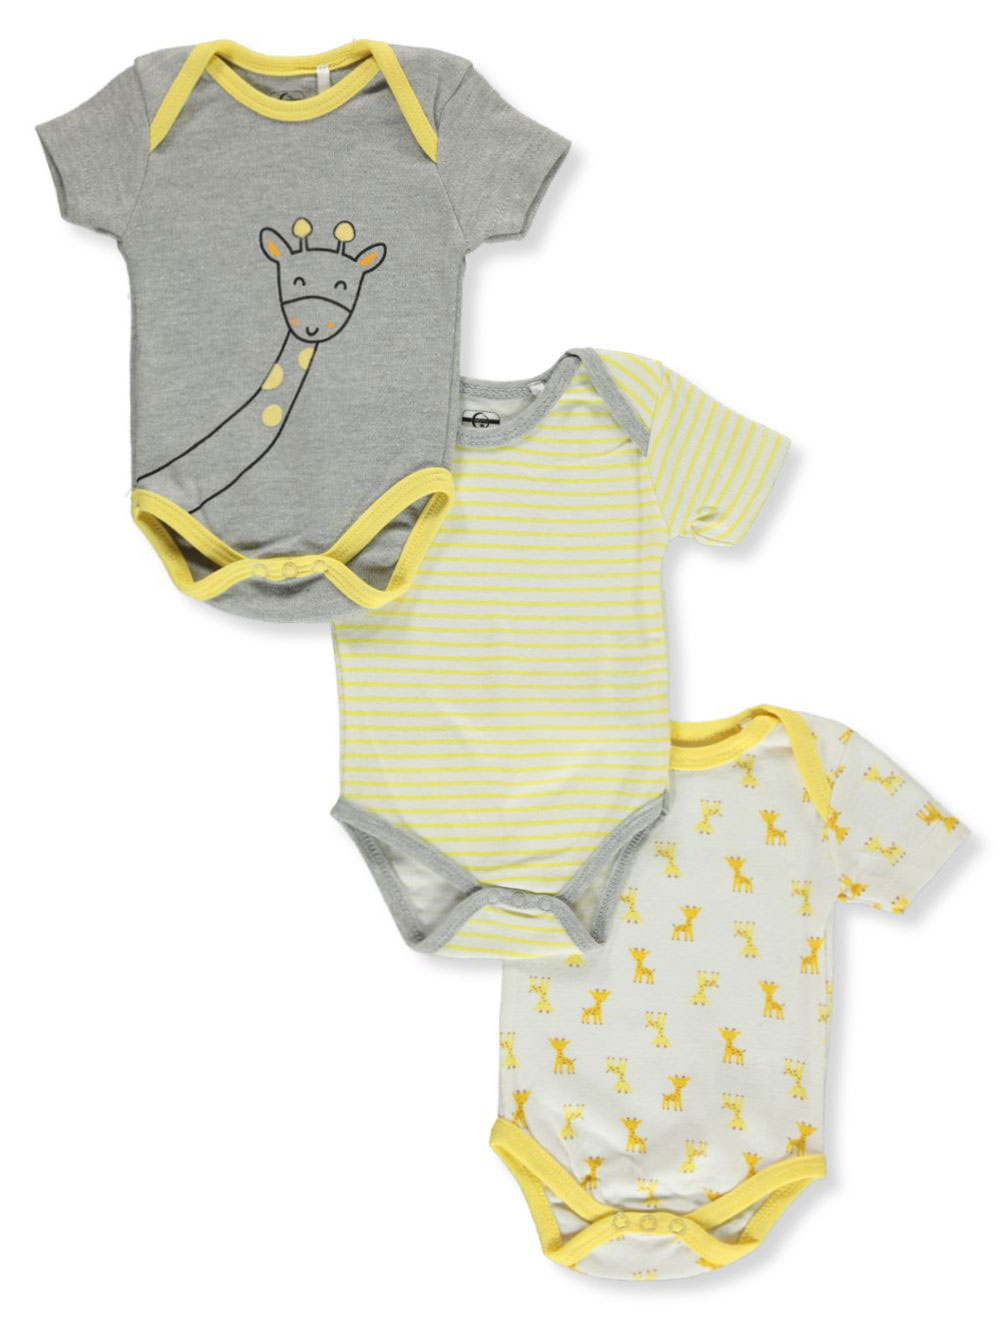 Unisex Baby 3-Pack Bodysuits